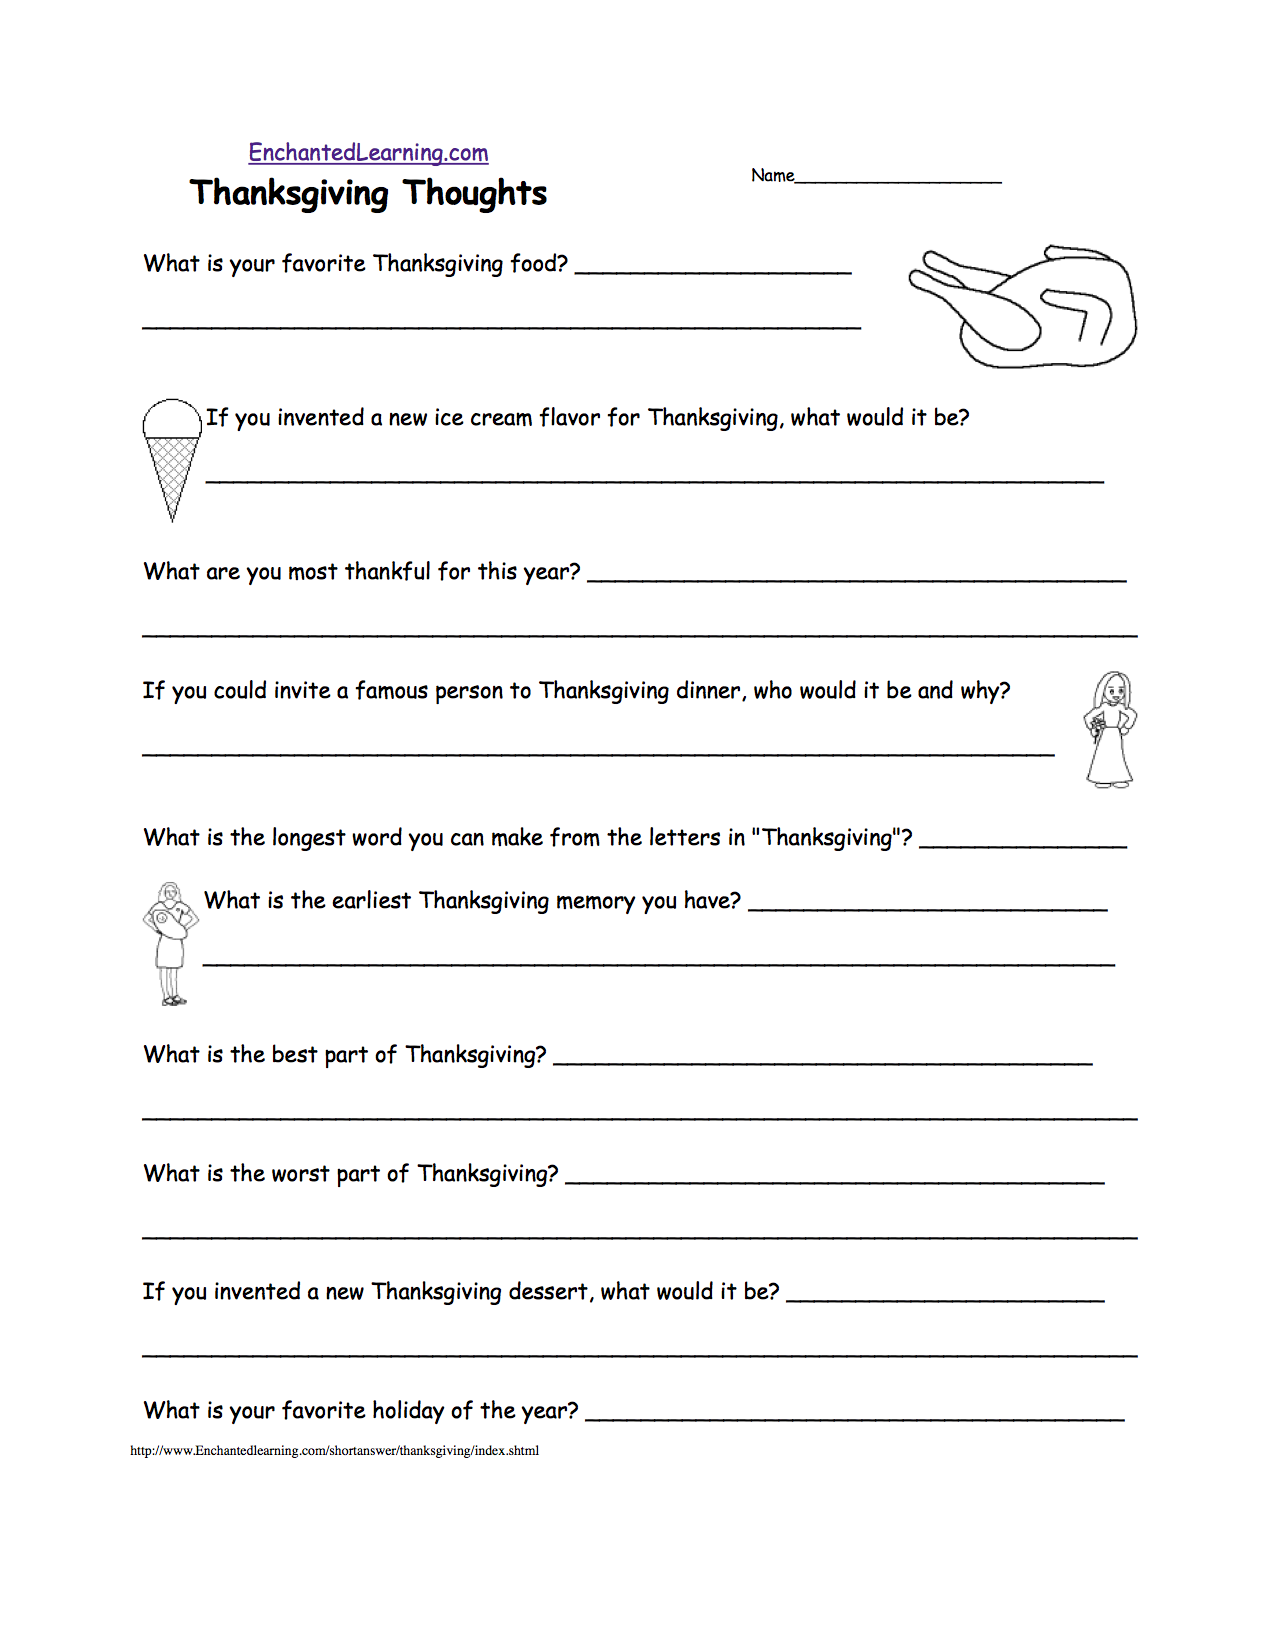 Worksheet Free Printable English Worksheets For Grade 5 thanksgiving crafts worksheets and activities thanksgiving